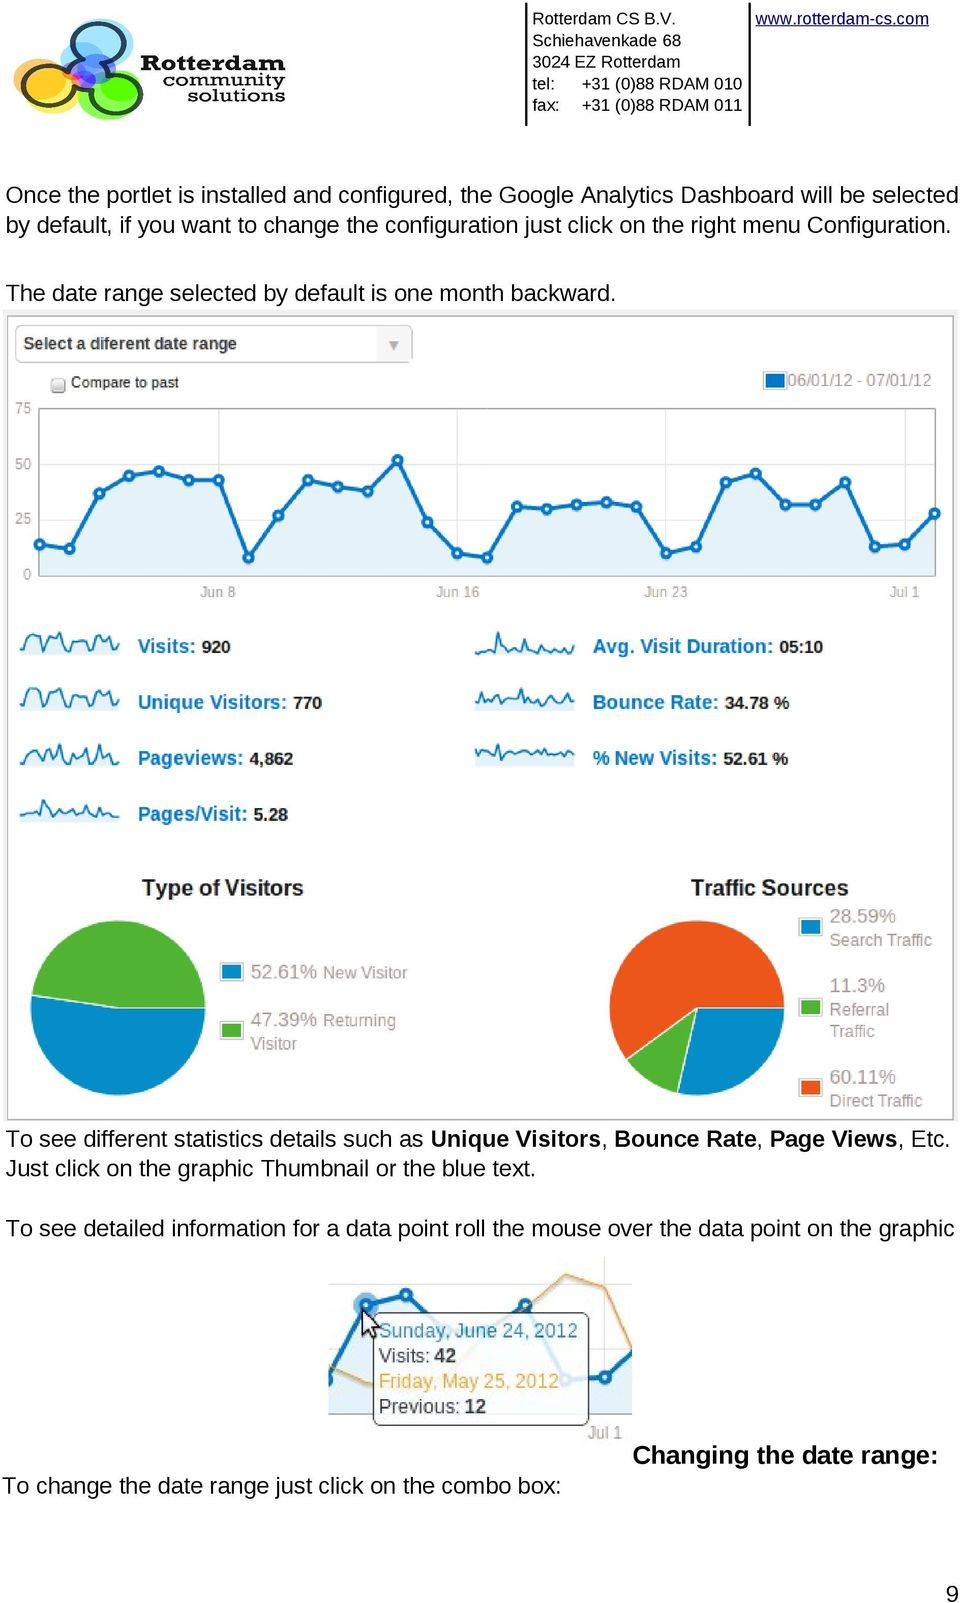 To see different statistics details such as Unique Visitors, Bounce Rate, Page Views, Etc.